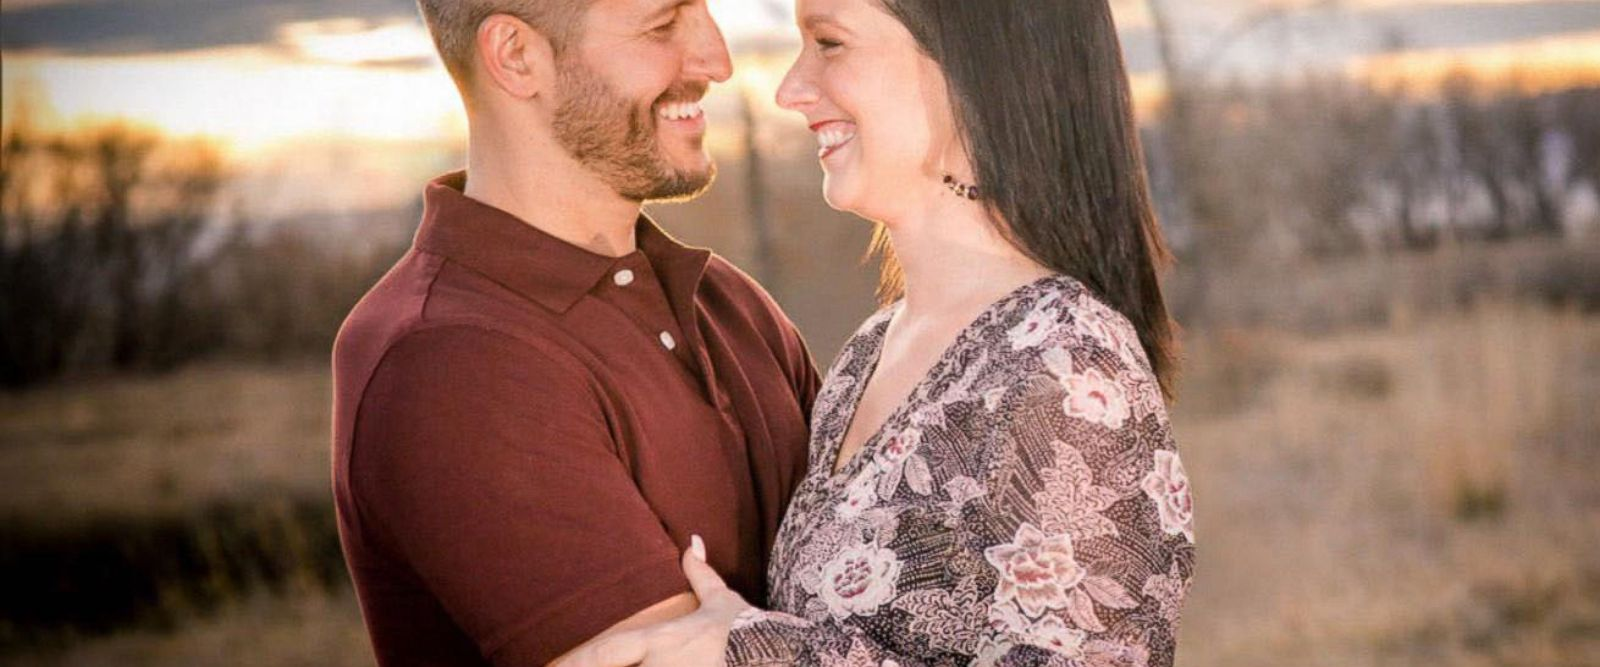 VIDEO: Chris and Shanann Watts' seemed to be in love, say friends, family: Part 1